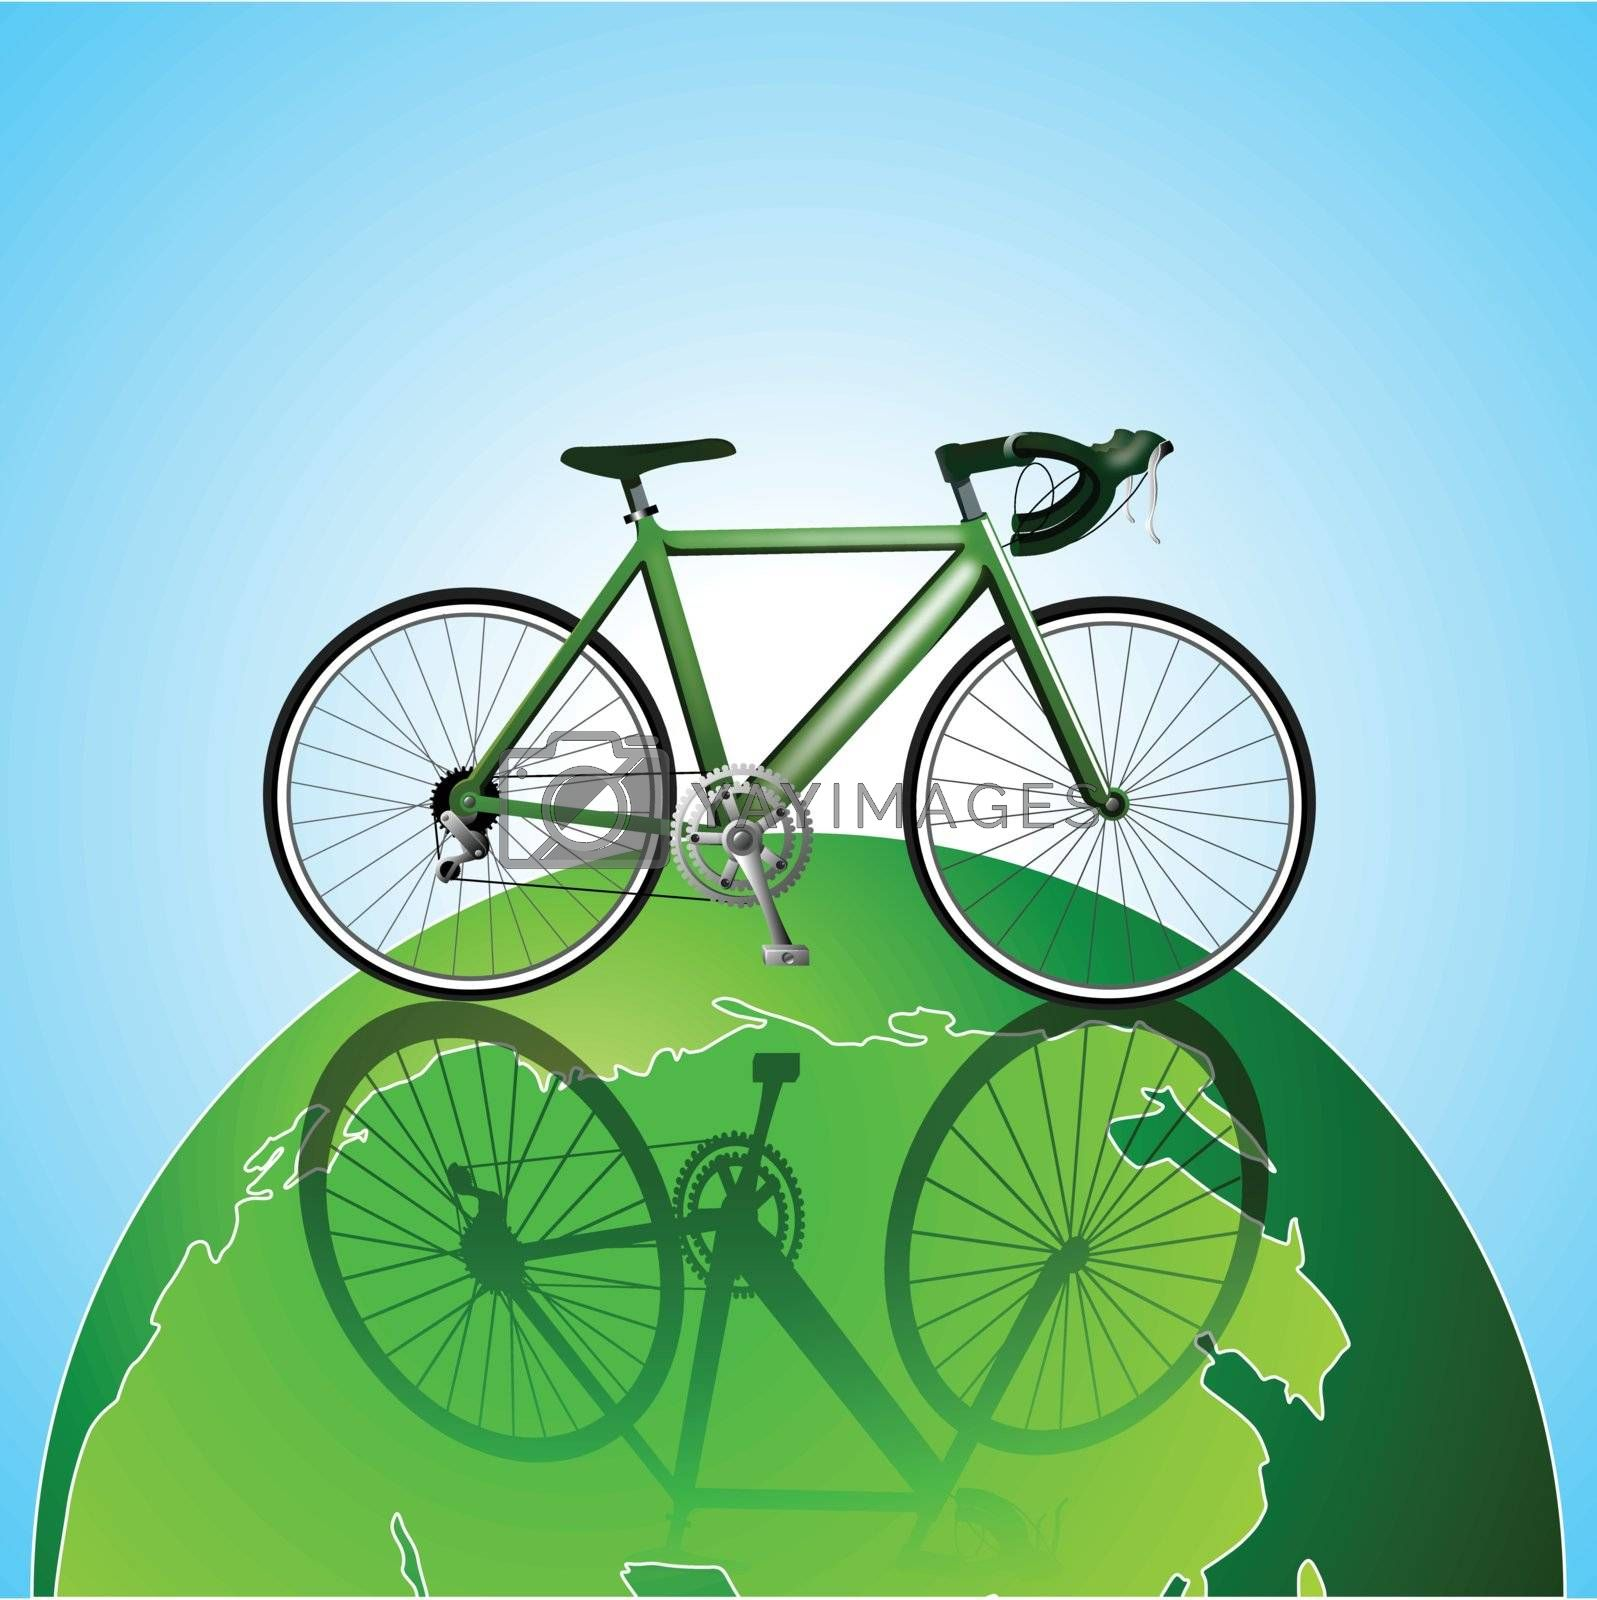 Bicycle on the globe ecology background by nirots